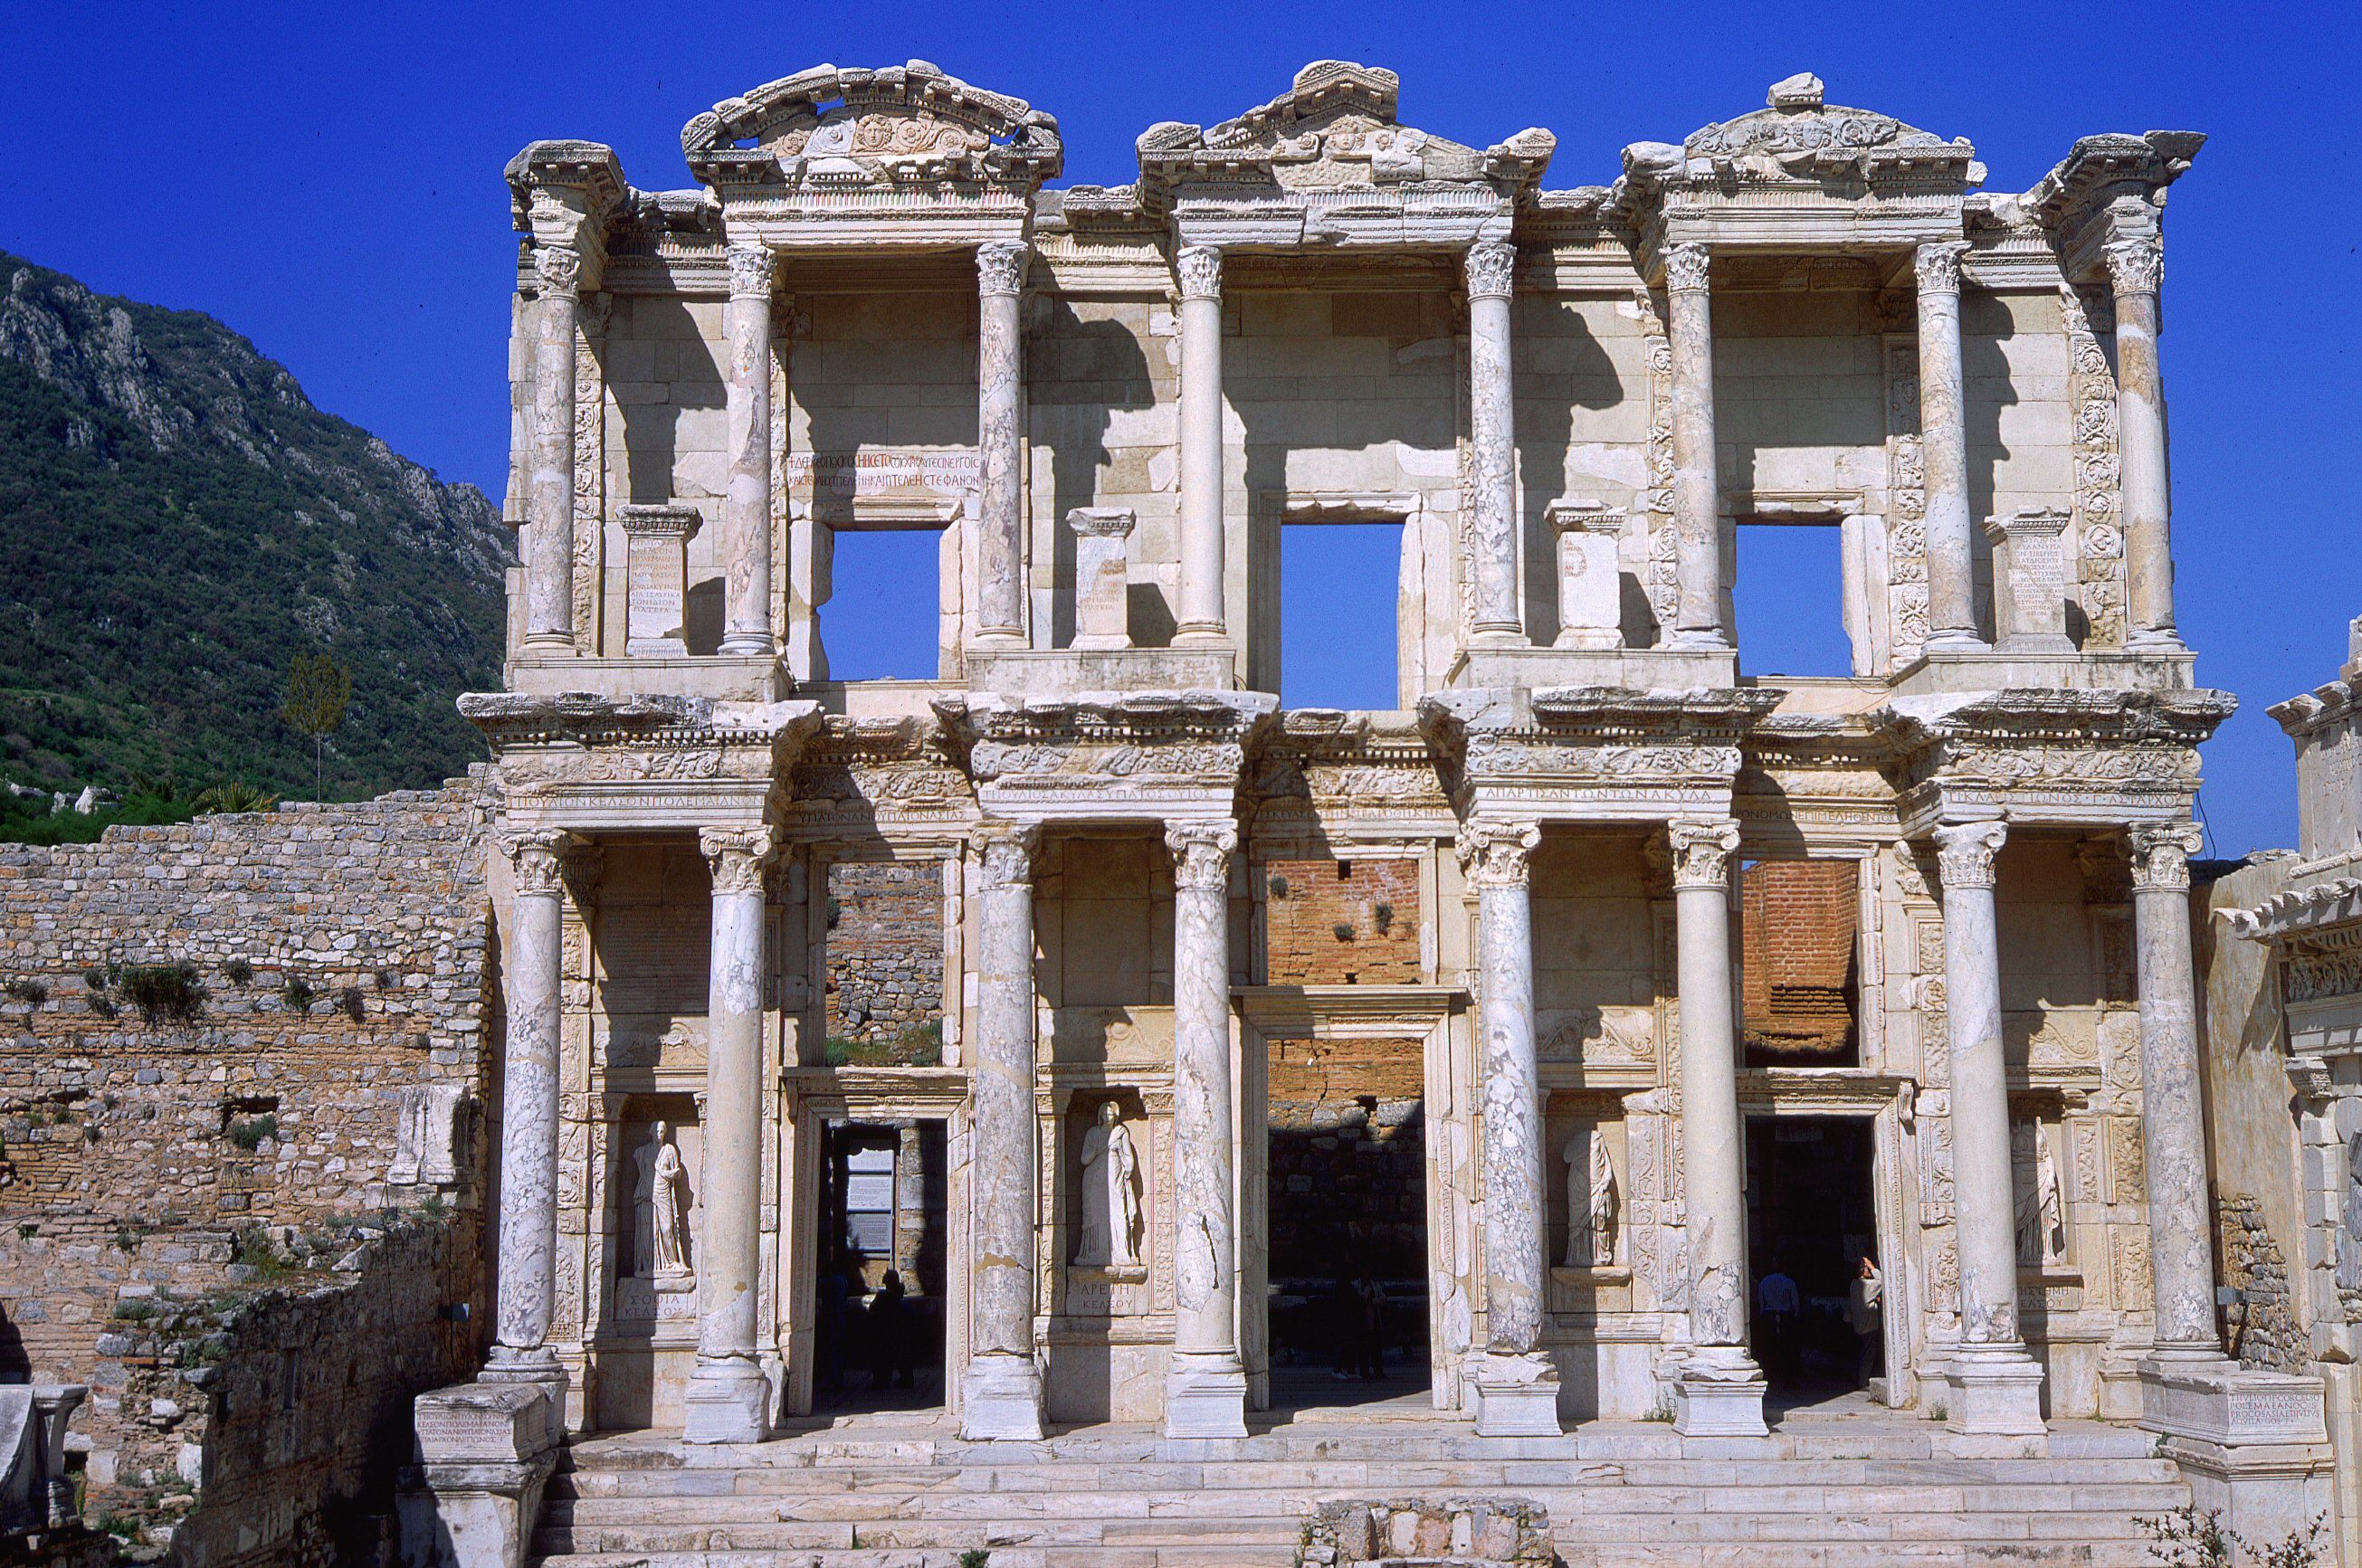 facade of ruined ancient building with columns and pediments, two stories